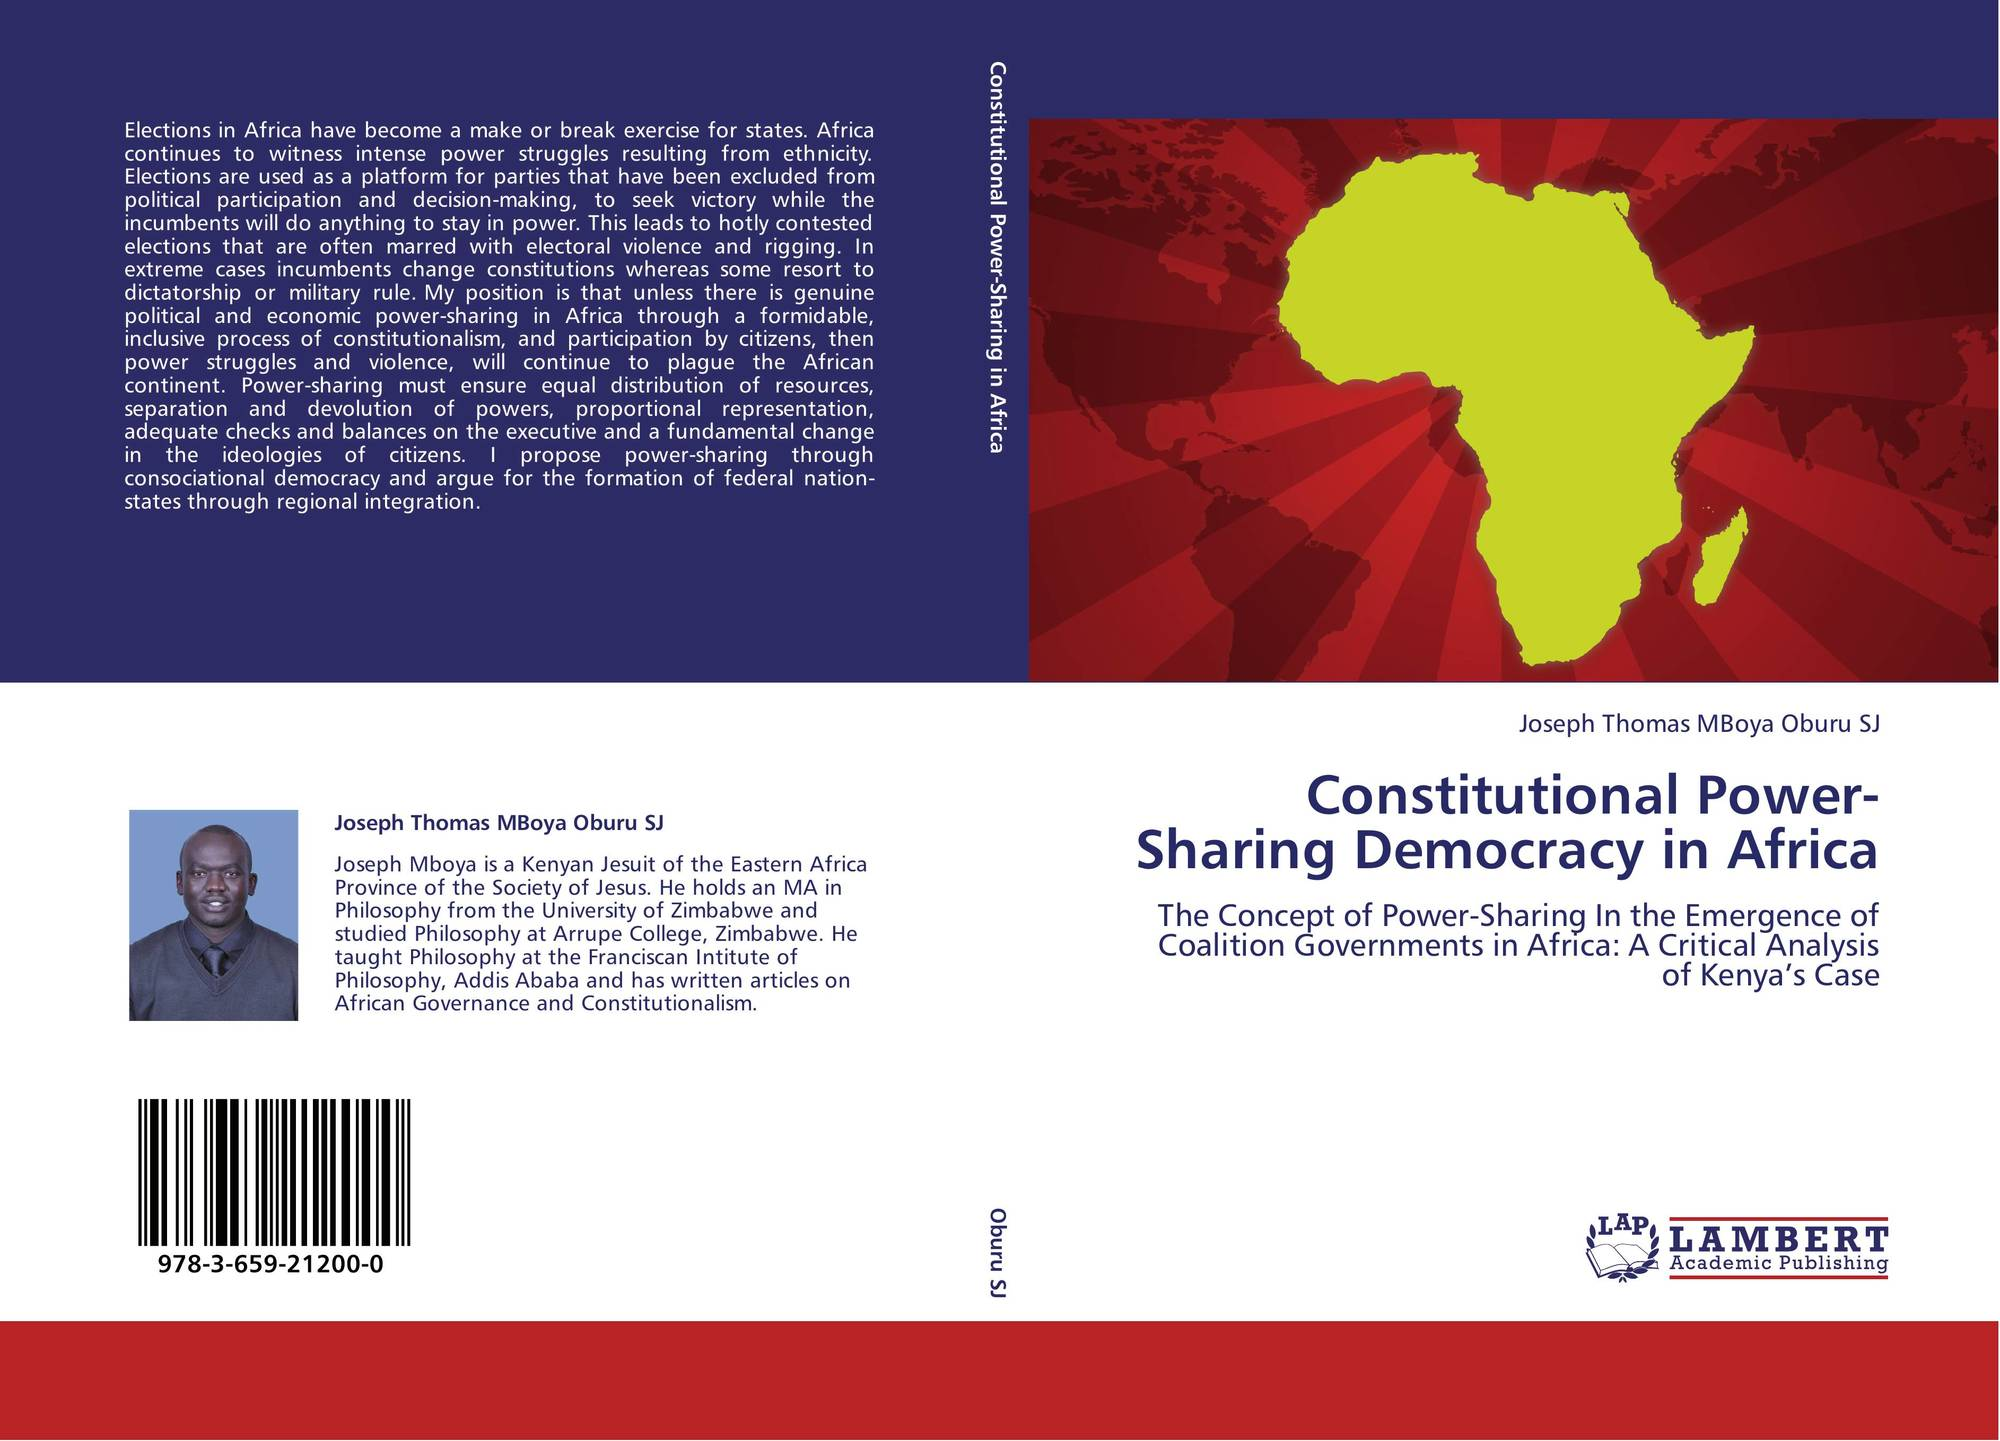 industrial democracy in zimbabwe essay Organisational democracy in the agriculture with respect to companies in the agriculture sector in zimbabwe: 1 what industrial democracy essay.